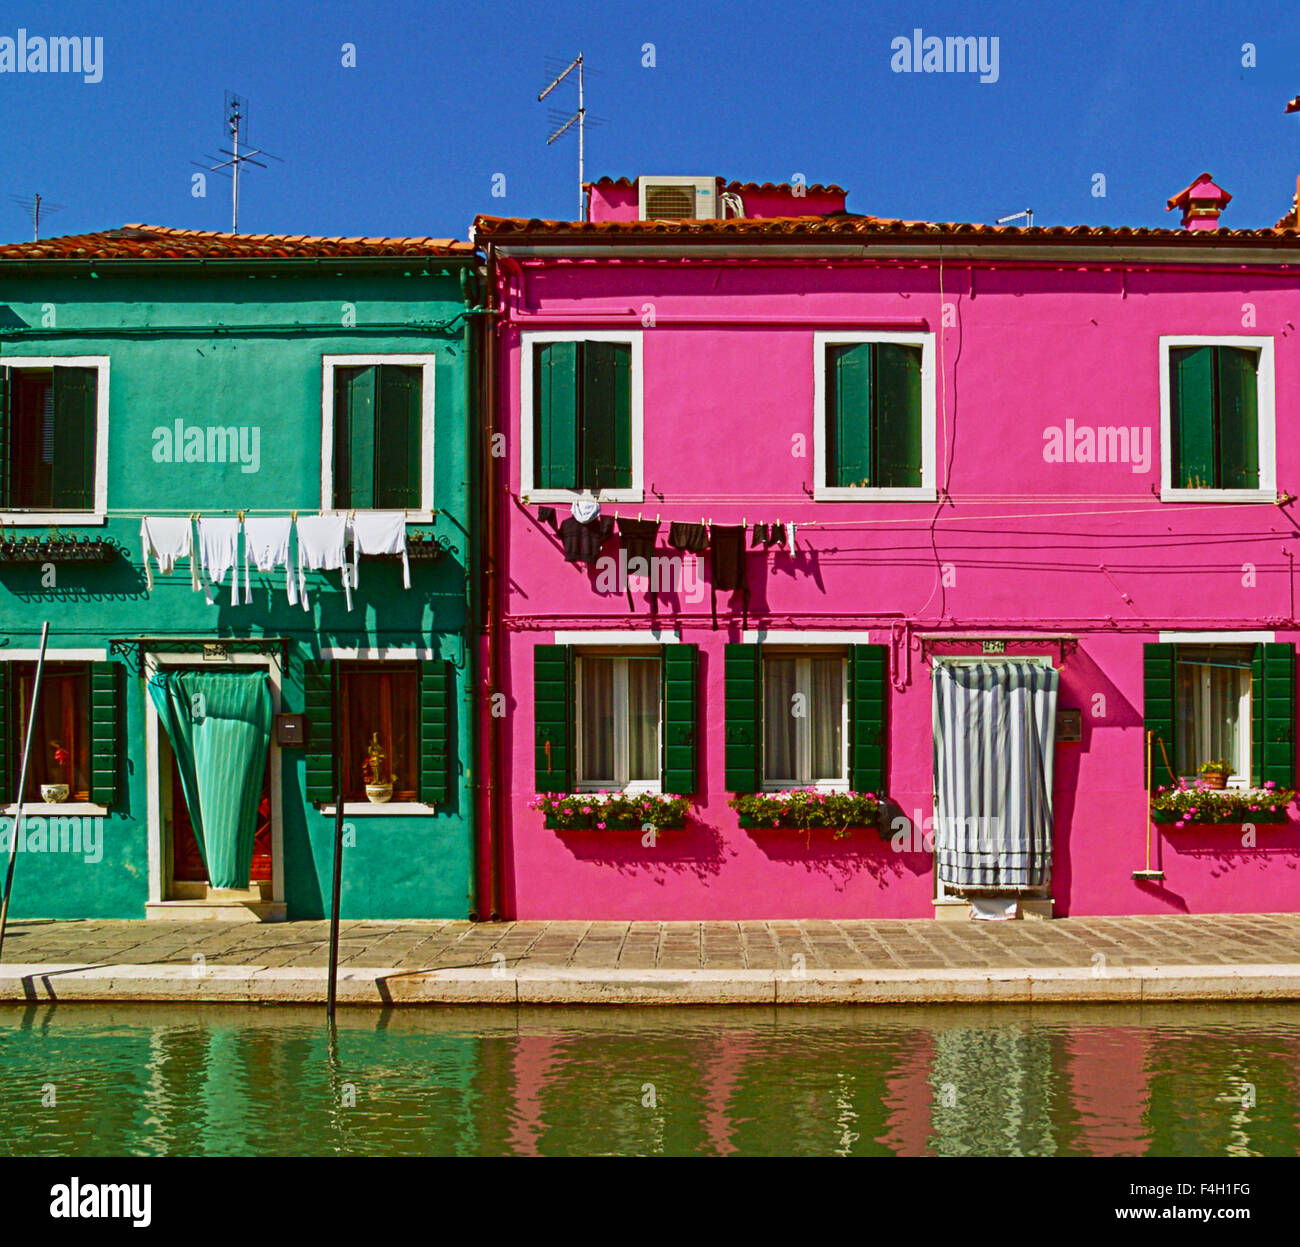 Green Painted Houses Stock Photos & Green Painted Houses Stock ...